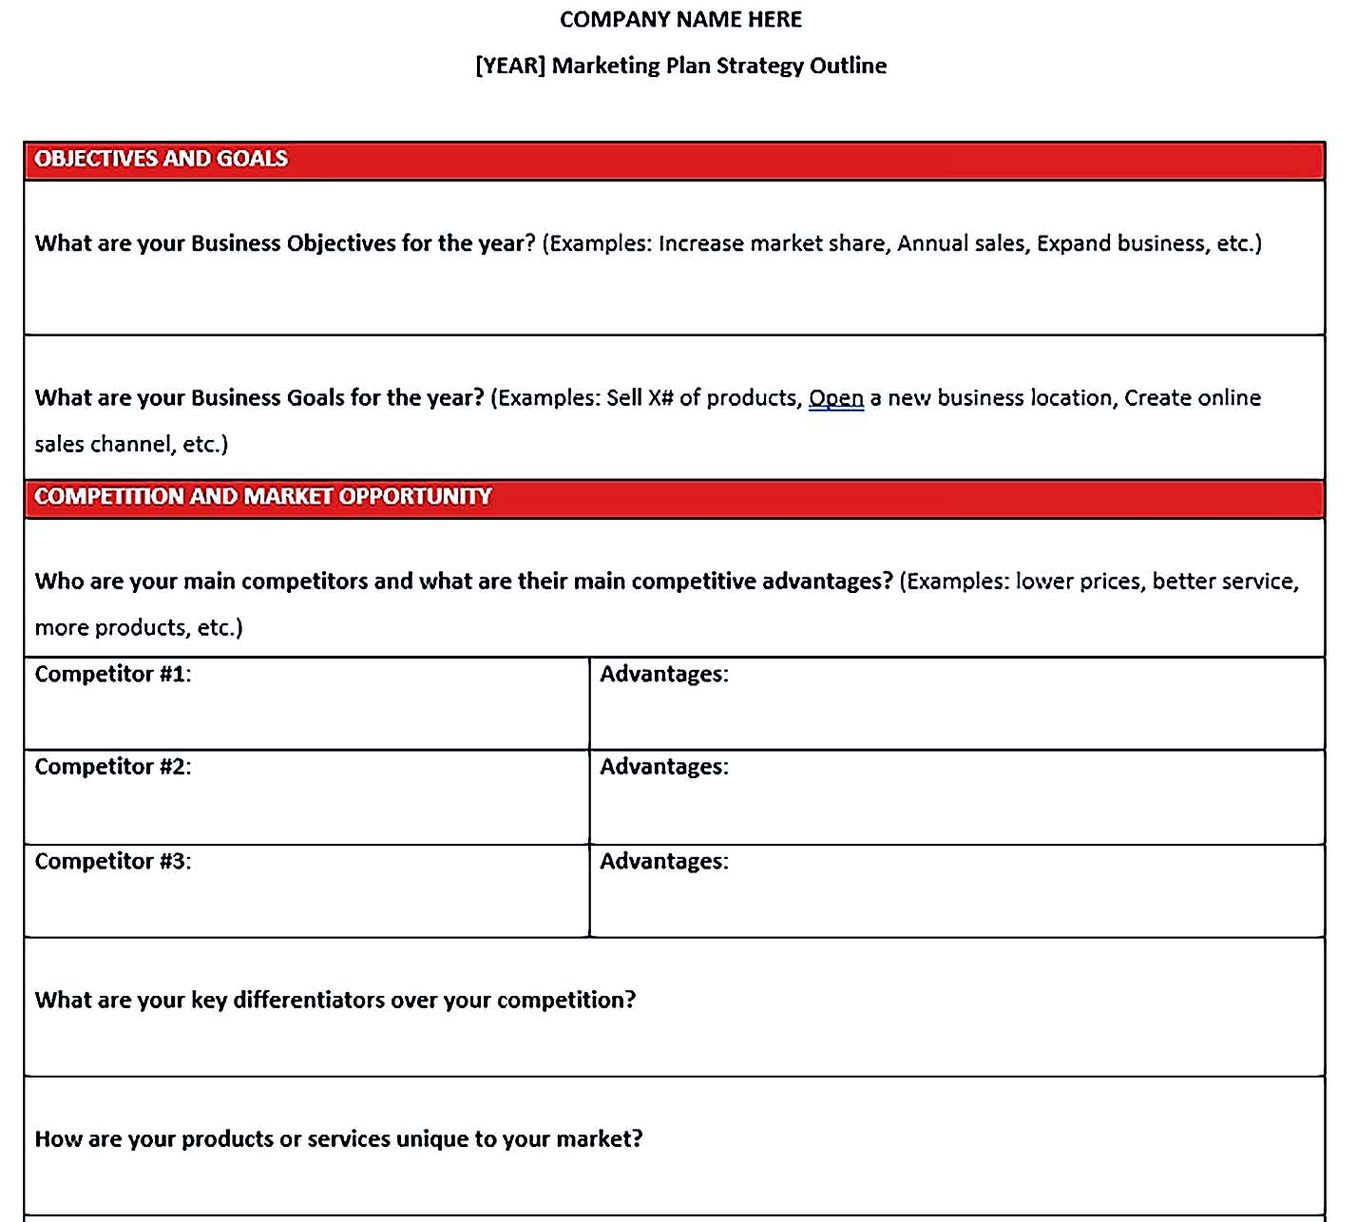 free annual marketing plan strategy template